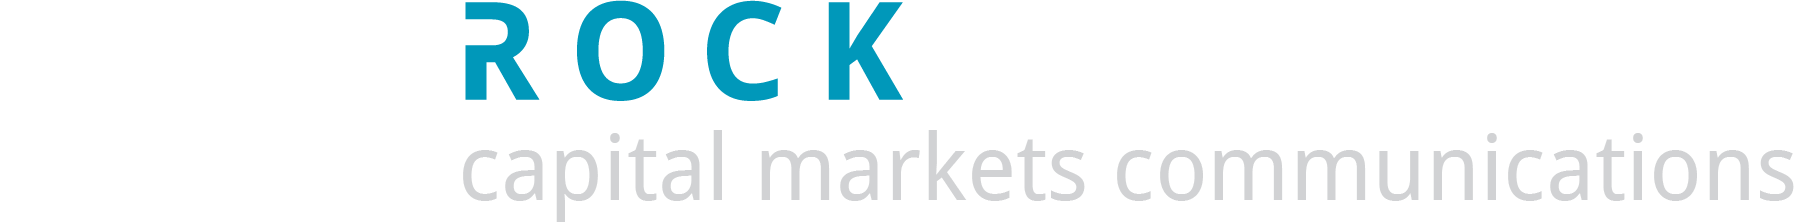 LodeRock capital markets communications